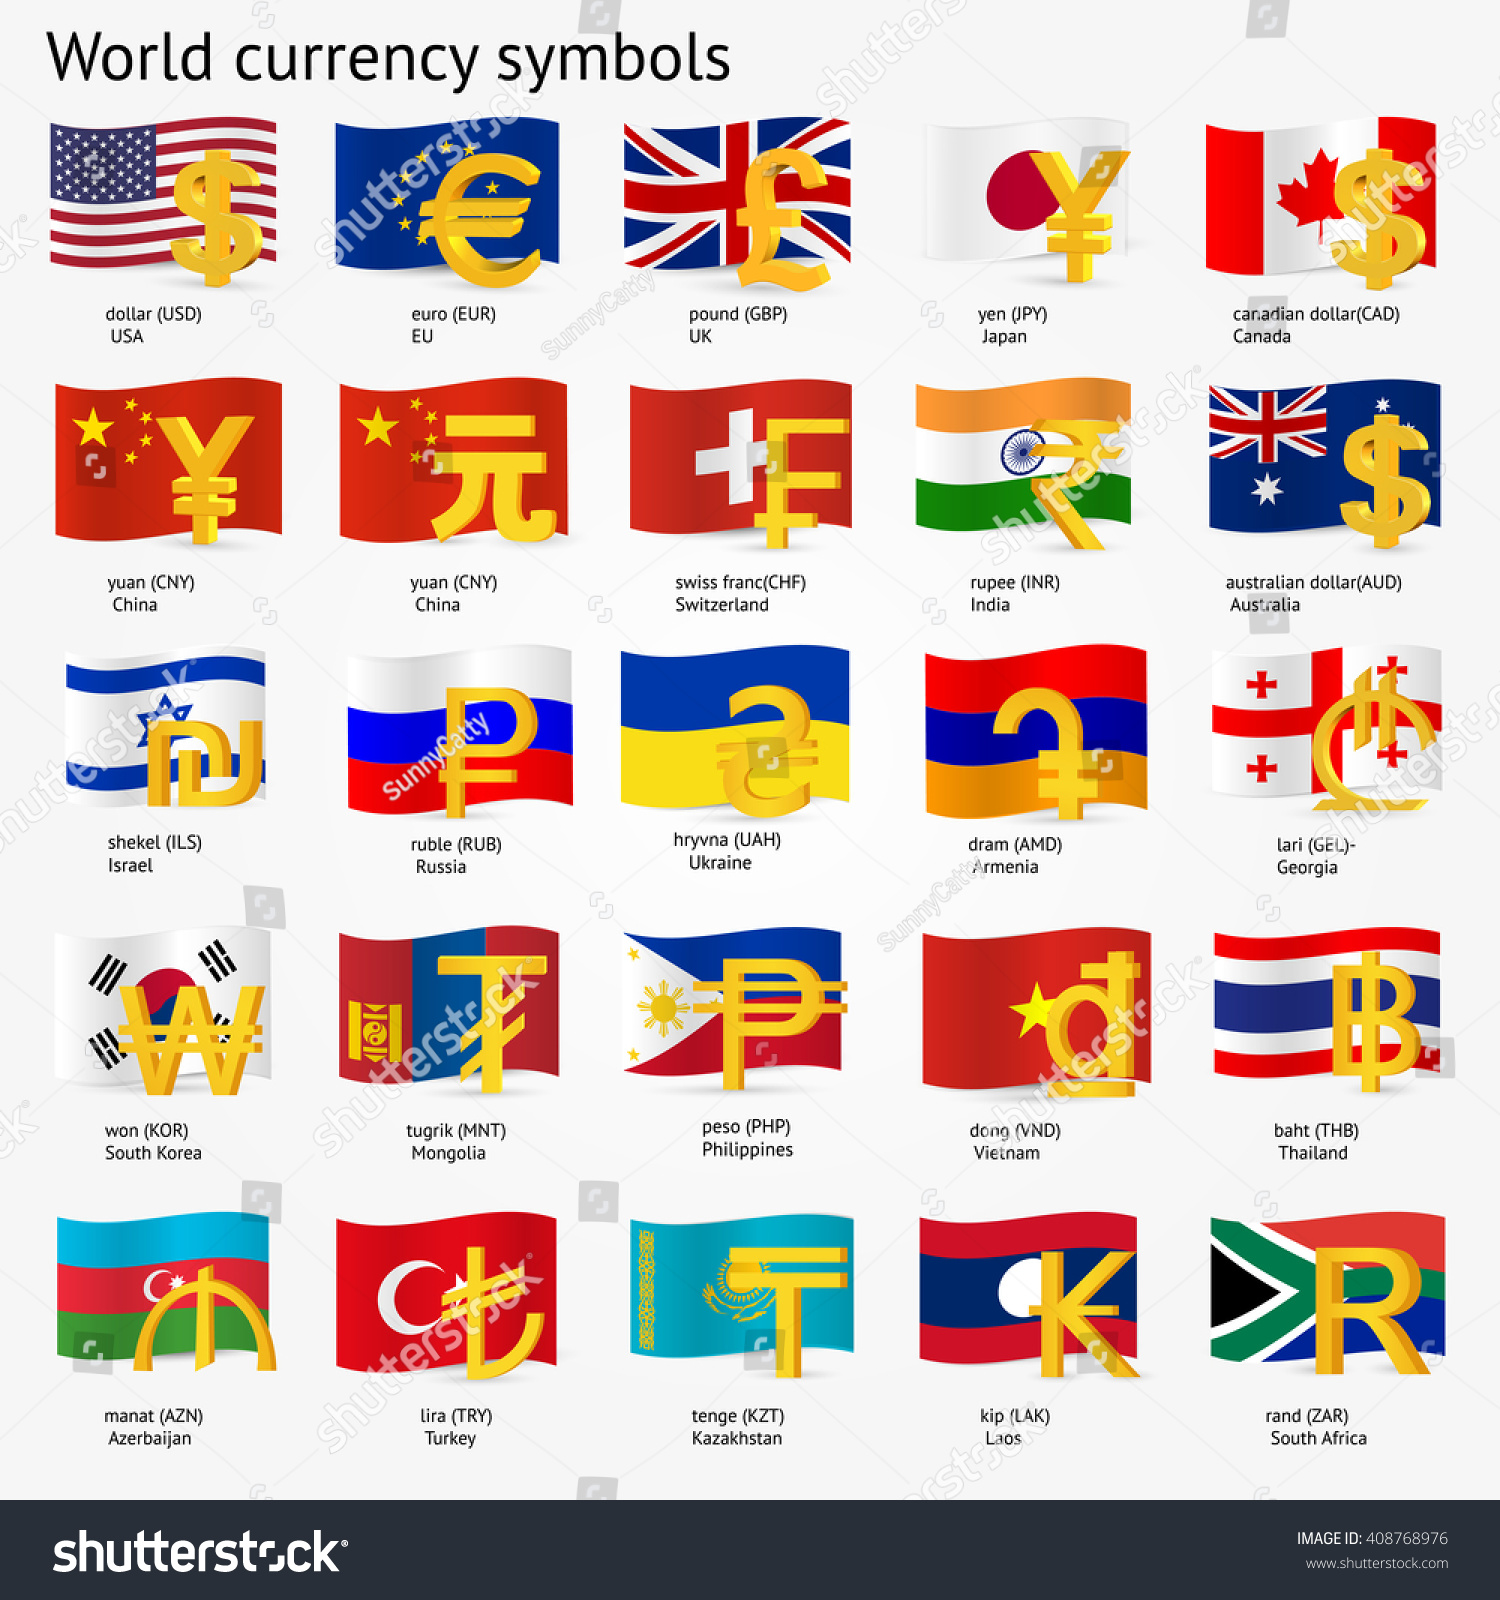 Symbols Of Our Country Worksheet